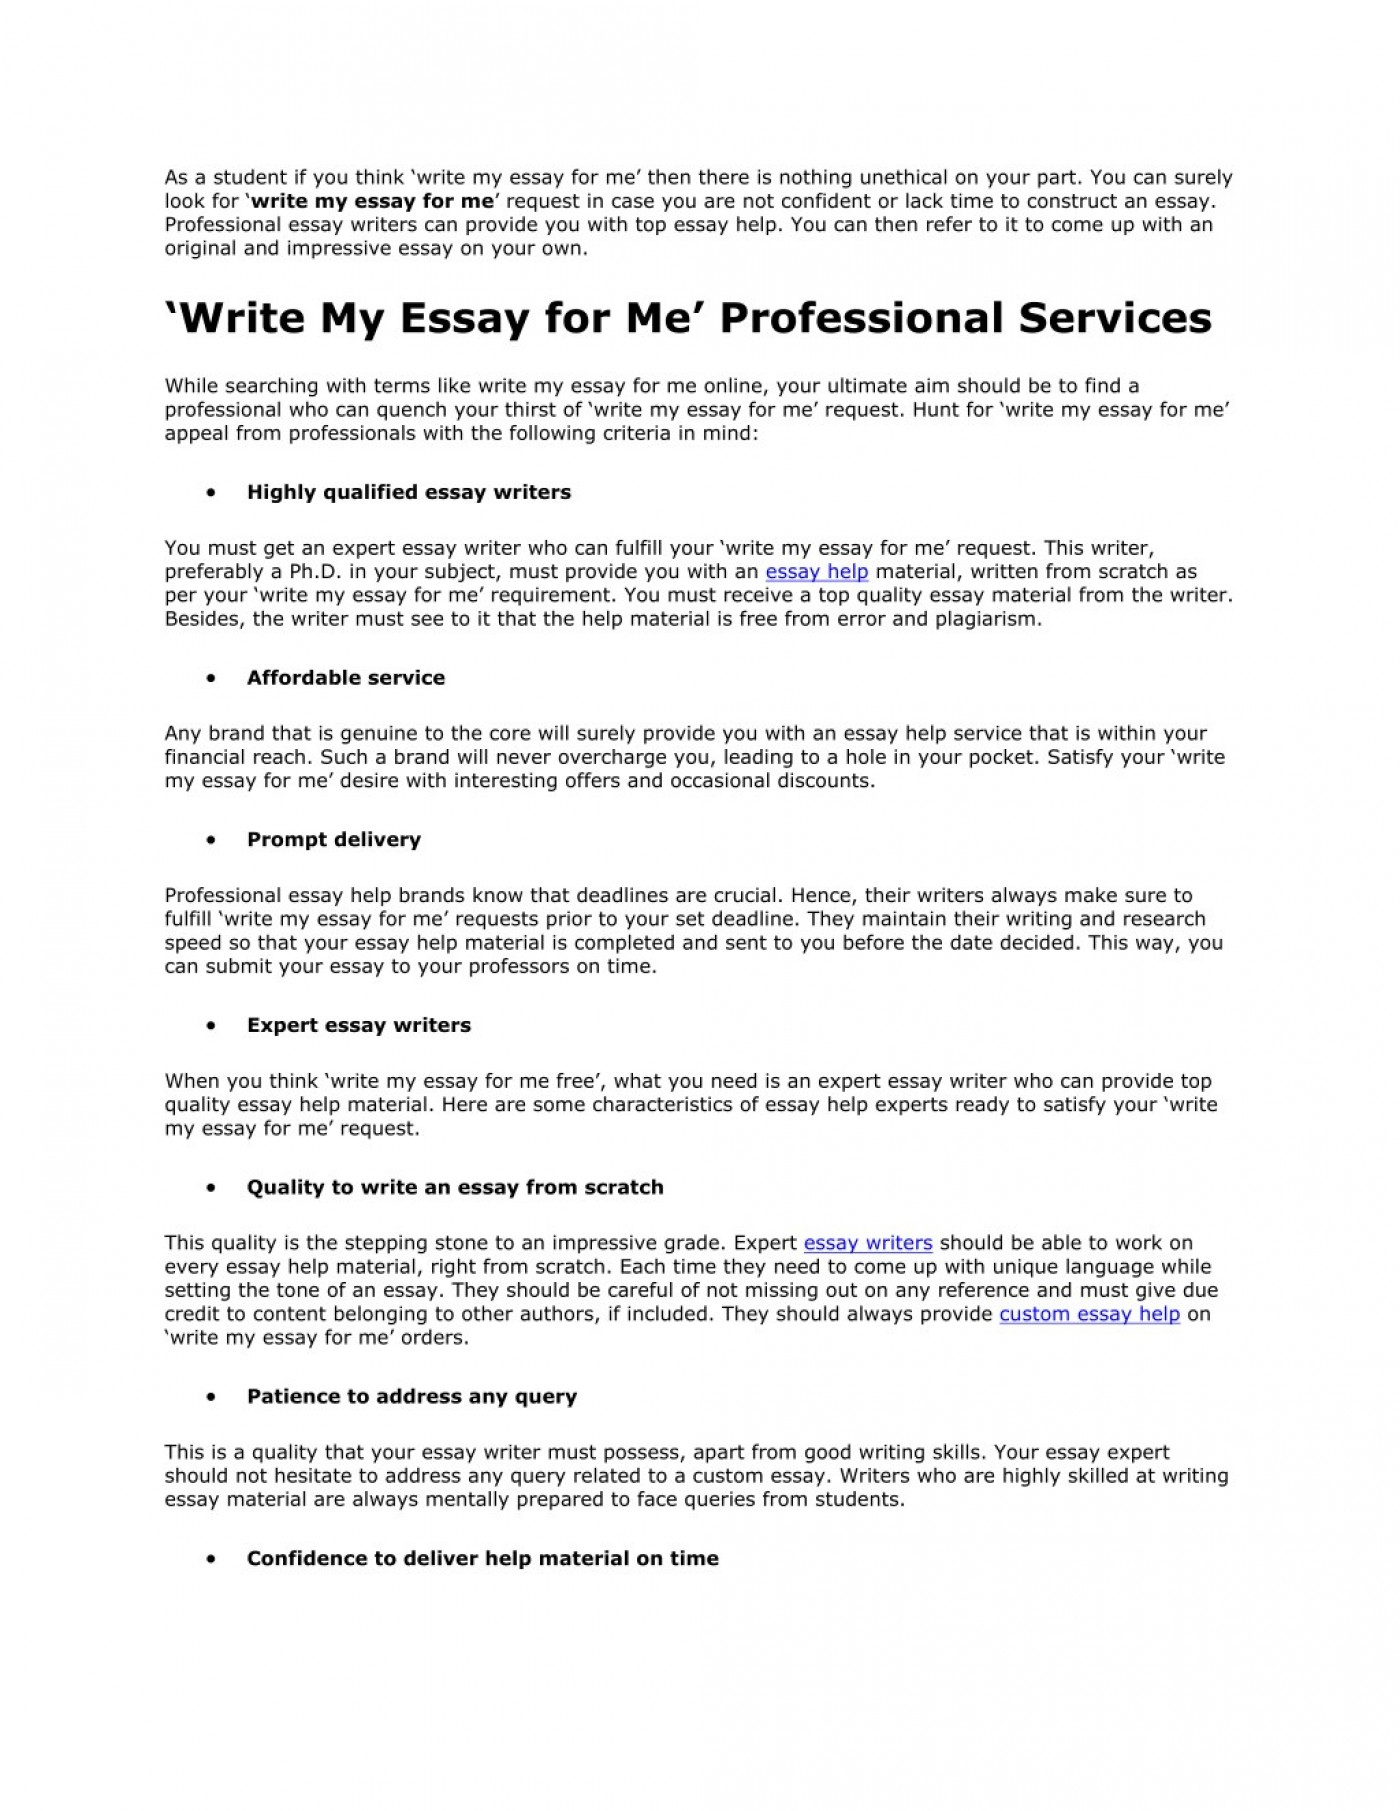 017 Write My Essay For Me Example As Student If You Think Surprising App Free Uk 1400